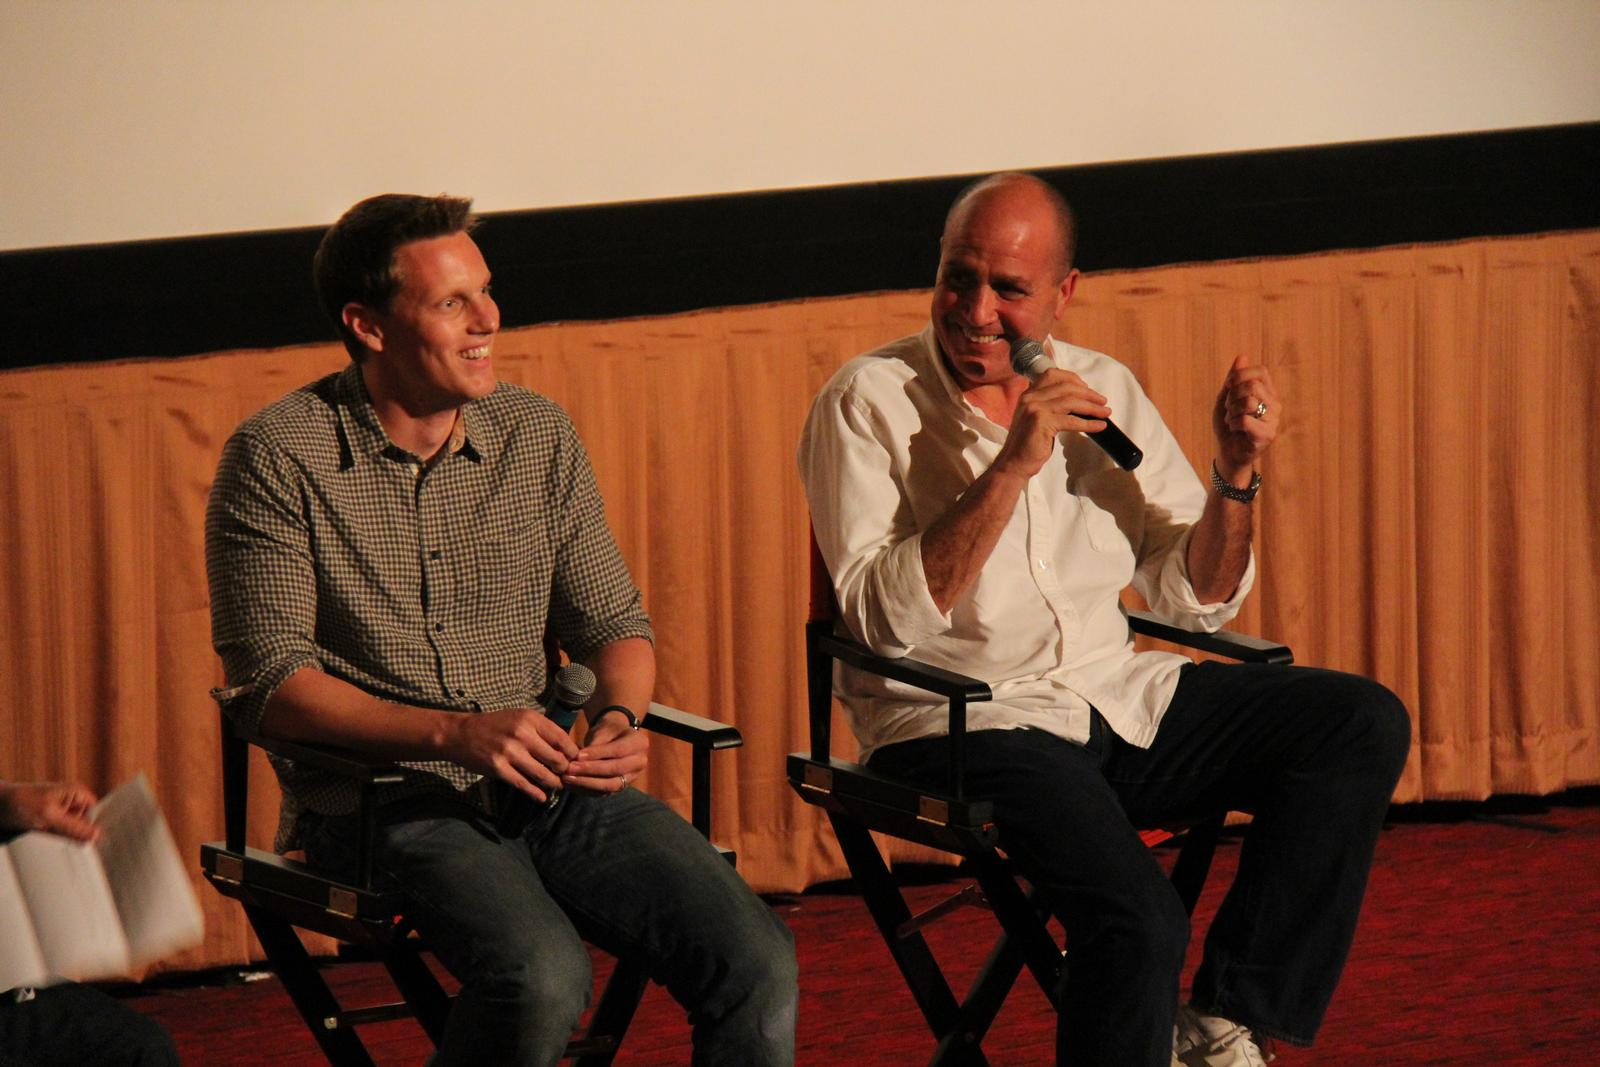 David Ellison (left) and Don Granger during post-screening Q&A